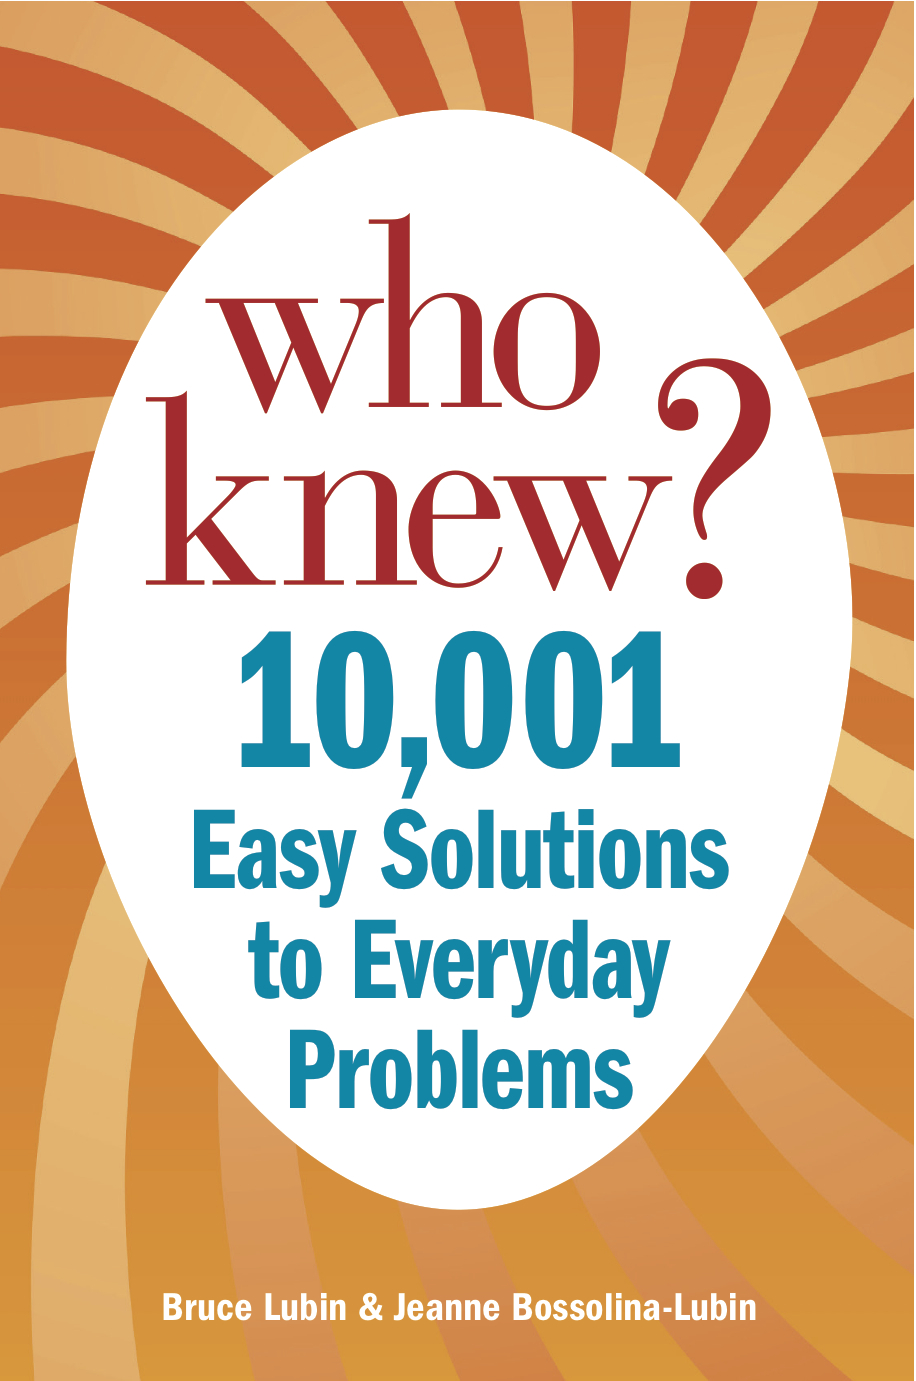 """More than 5 million copies sold - Client: Bruce Lubin & Jeanne Bossolina-Lubin, Who Knew?Publisher: Castle Point Books, 2011Distributor: HSN, TelebrandsWith its own infomercial and sold near registers in stores like Bed, Bath, & Beyond and Walmart, Who Knew? is one of the best-selling books that's not a cookbook in """"As Seen on TV"""" history. In addition to writing and art directing the book, I crafted the script and supported production for the half-hour-long infomercial, as well as numerous appearances on The Today Show. I also created the book's companion web presence, WhoKnewTips.com, that was later absorbed into QuickAndDirtyTips.com as part of a joint venture with MacmillanBuy on Amazon"""